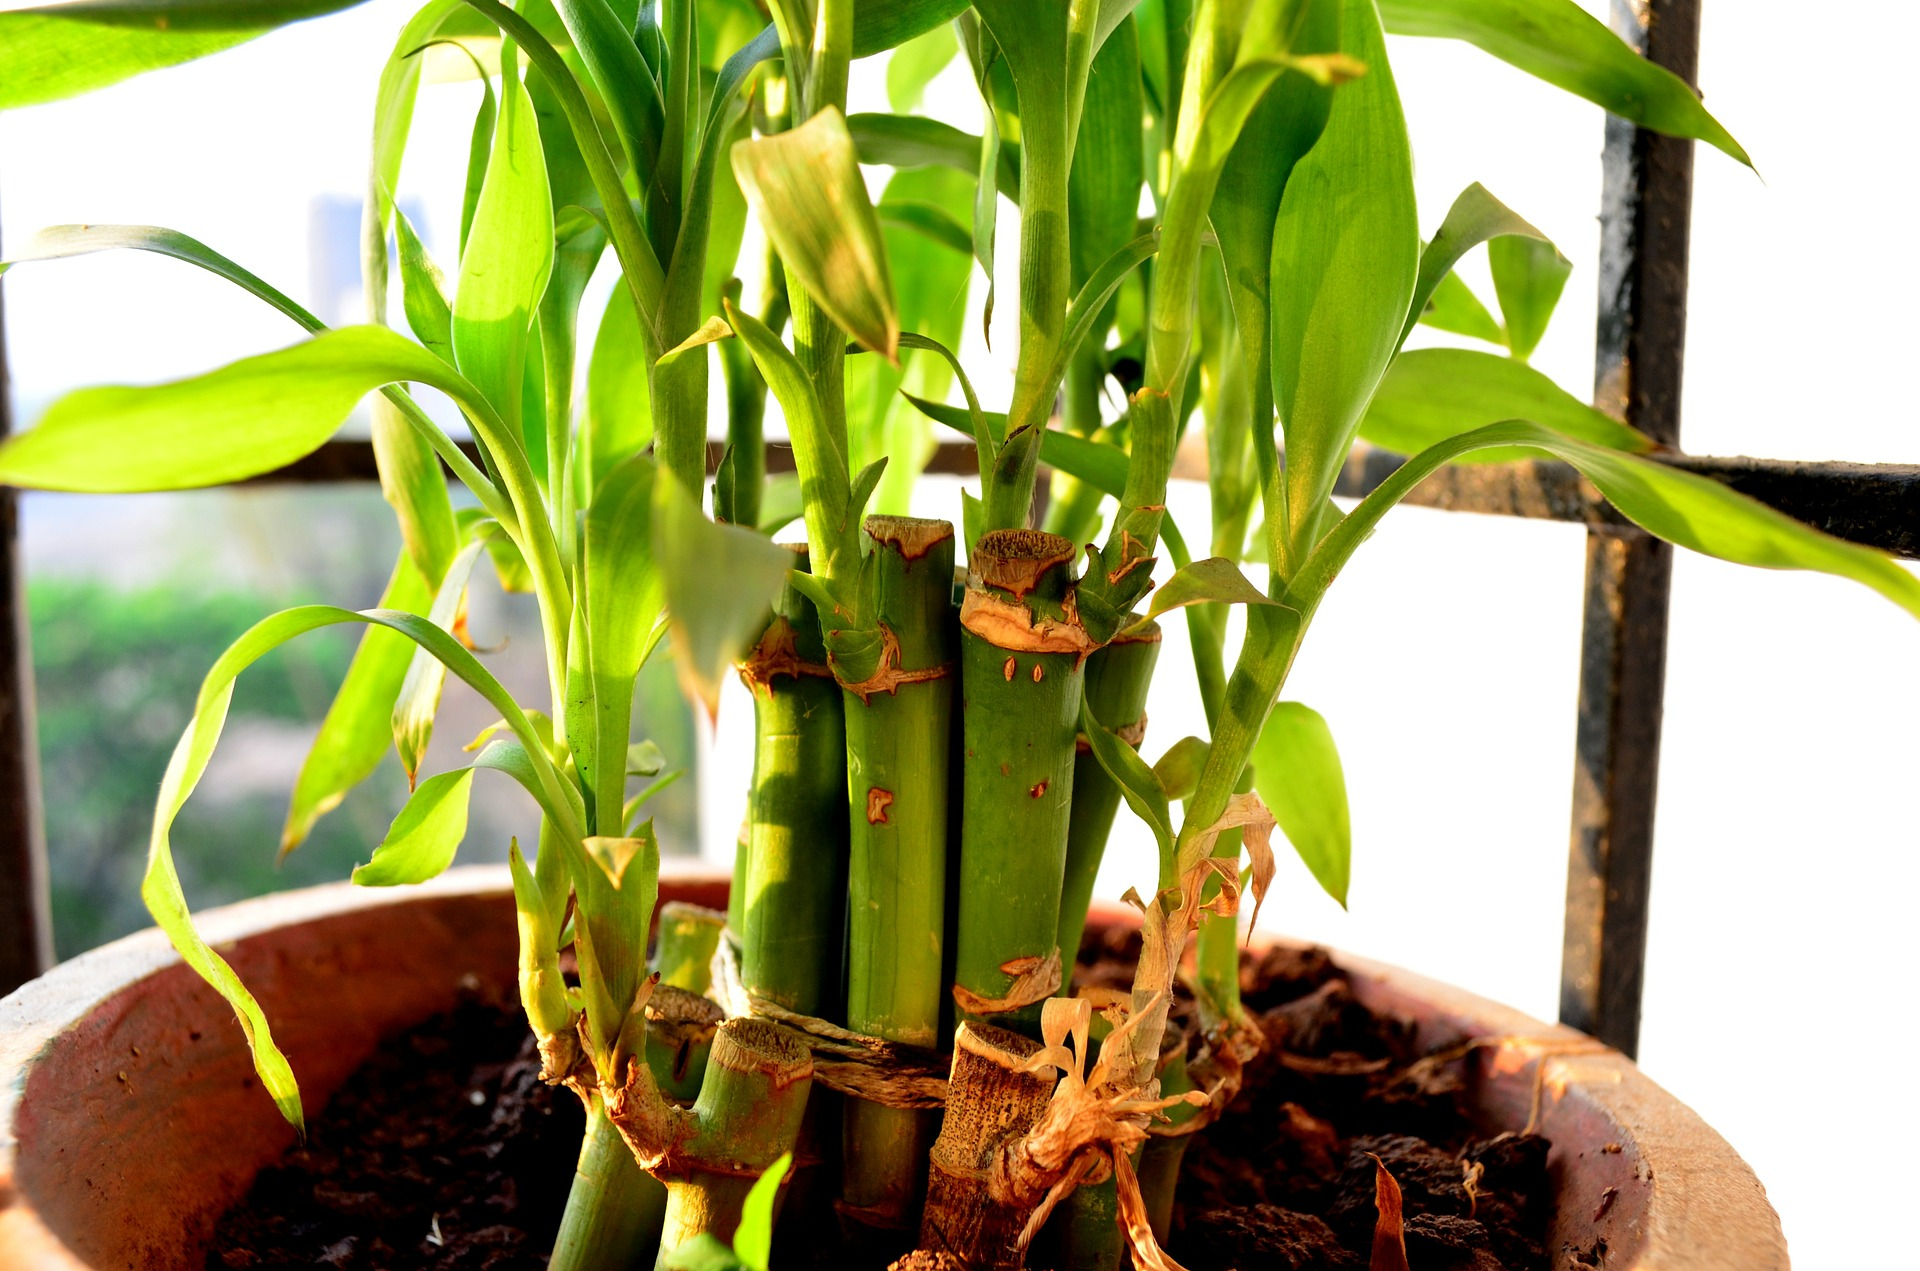 How to Grow and Care for Your Lucky Bamboo Plants